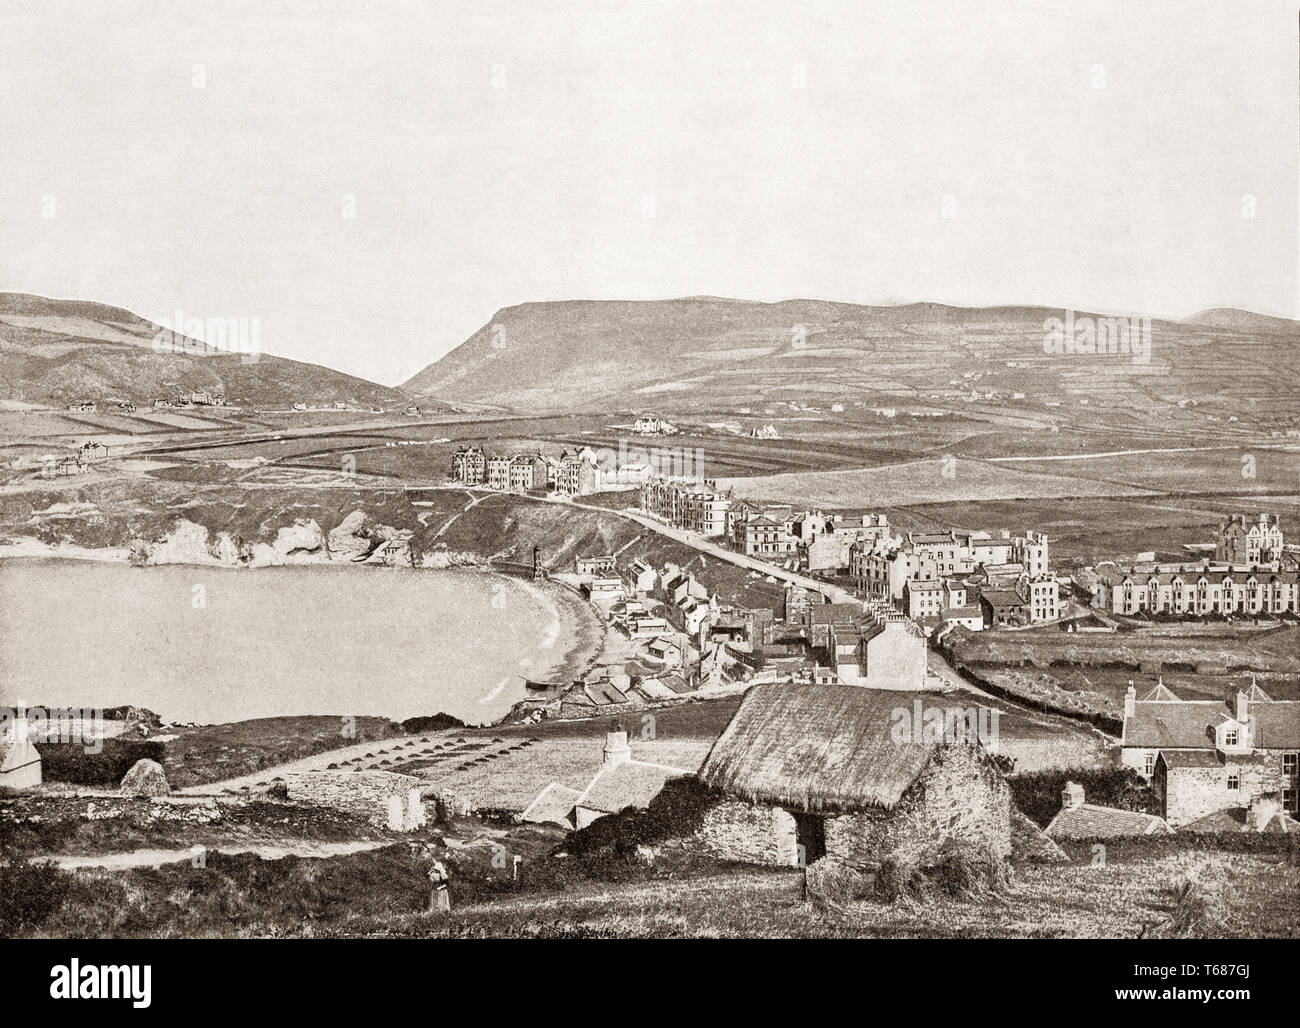 A 19th Century view of a traditional thatched cottage and farming just outside Port Erin, a seaside village in the south-west of the Isle of Man, a self-governing British Crown dependency in the Irish Sea between Great Britain and Ireland. - Stock Image